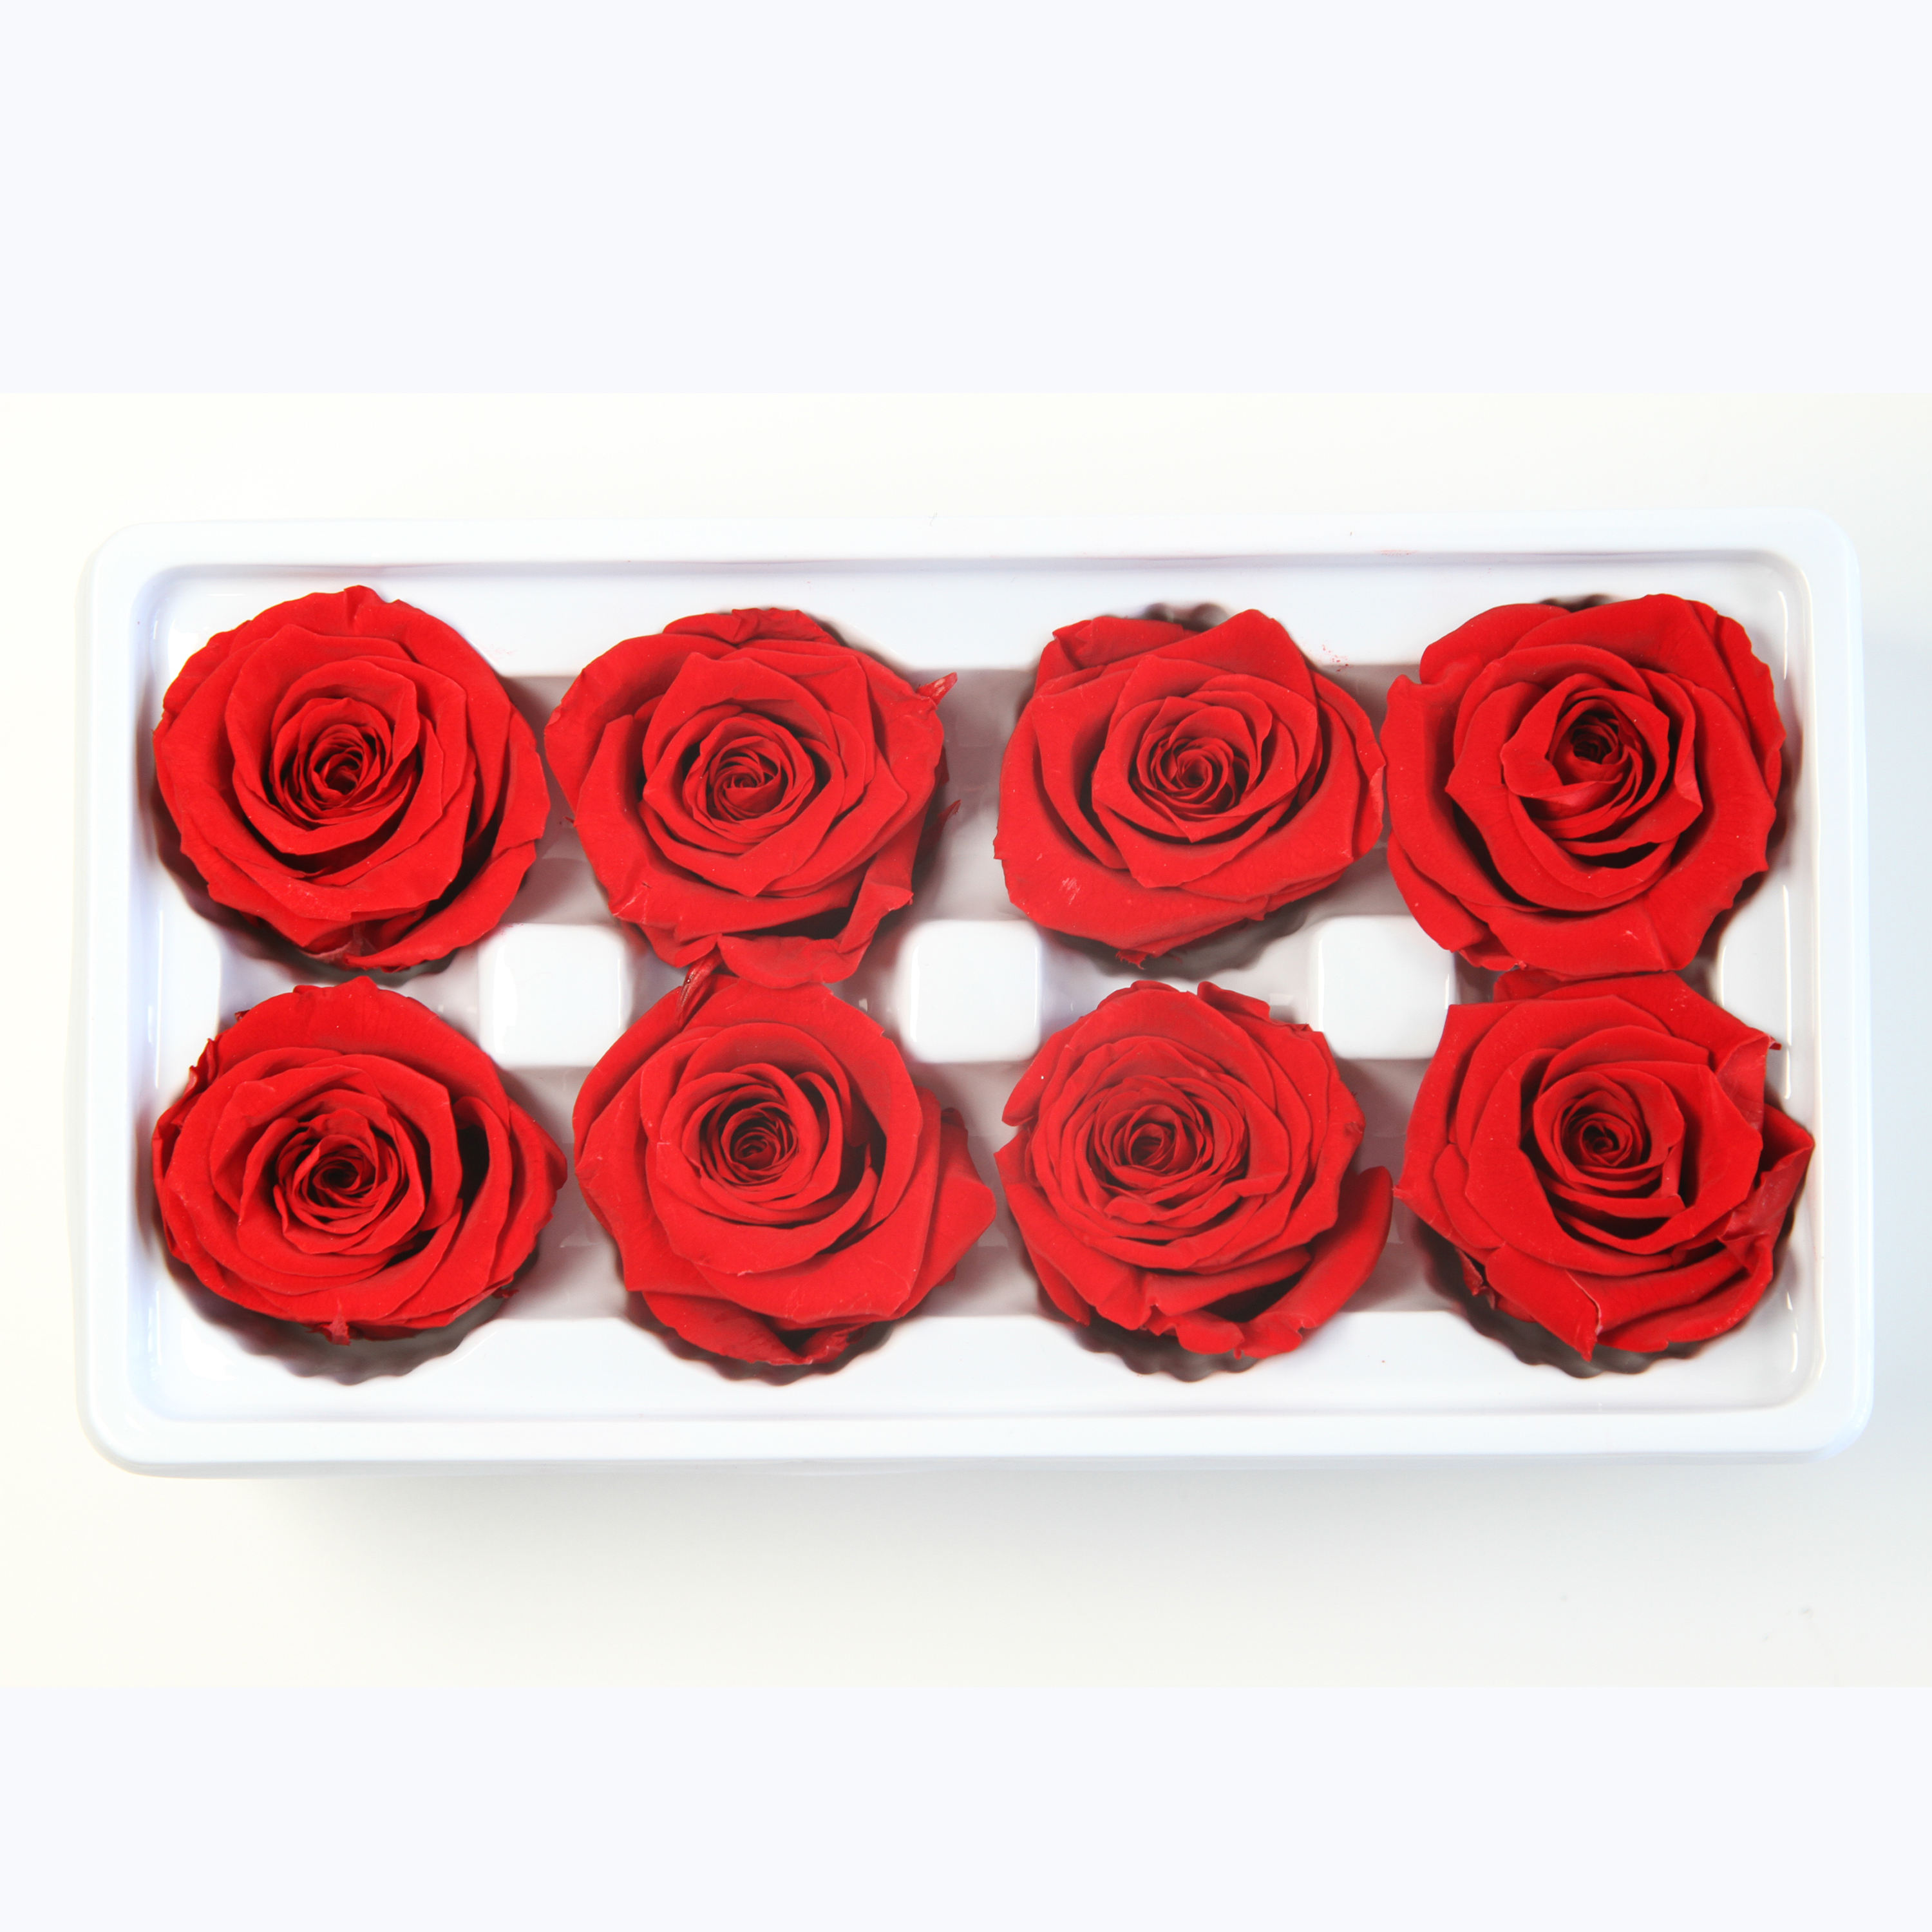 Special Offer 4-5cm Preserved Roses Head Long Lasting For Home Decor Natural Eternal Forever Immortal flower